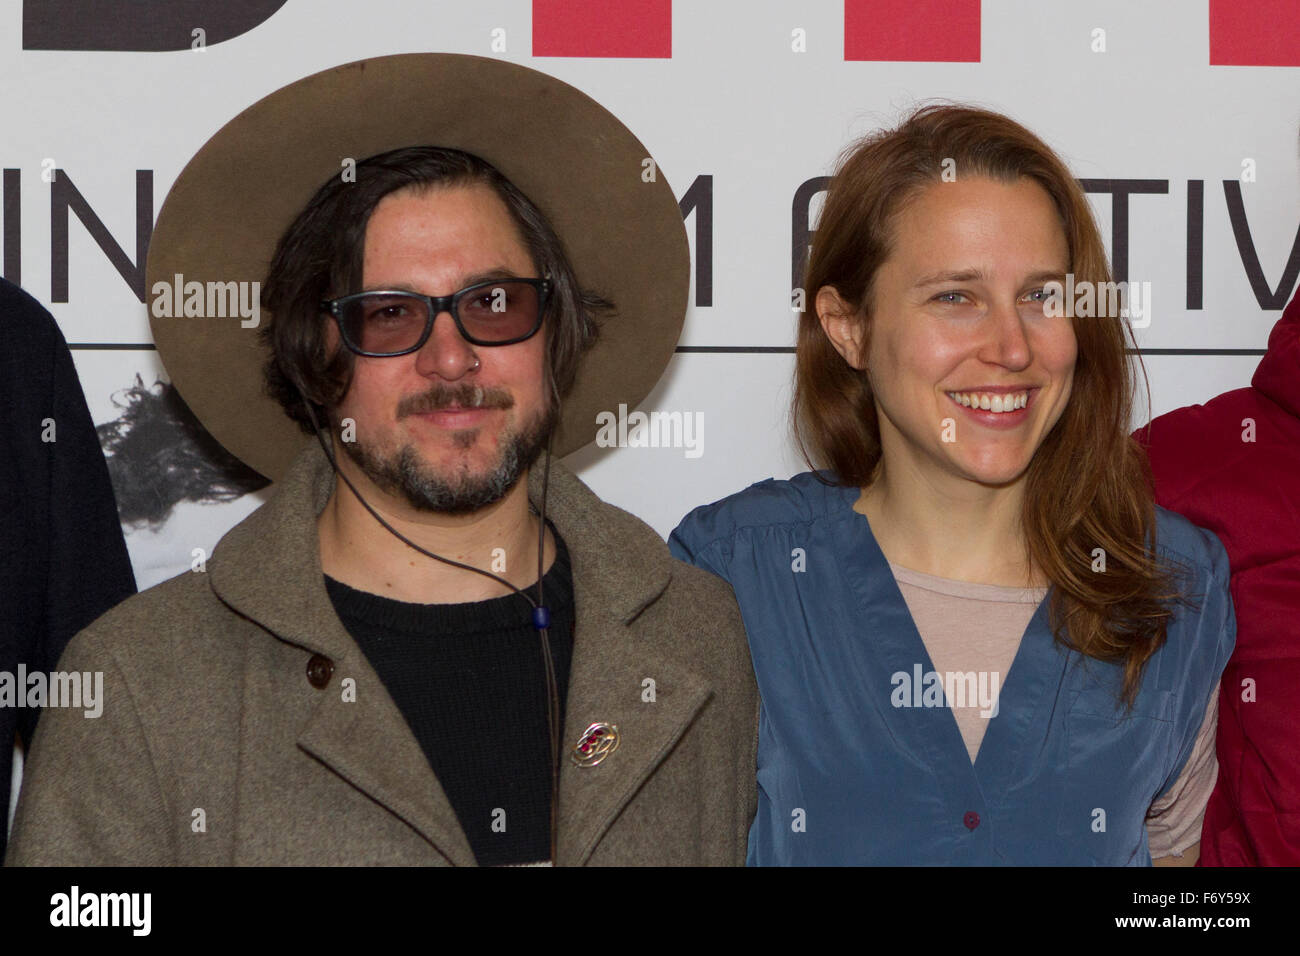 Turin, Italy. 21st Nov, 2015. Filmmakers Corin Hardy (left) and Josephine Decker (right) at Torino Film Festival. Stock Photo